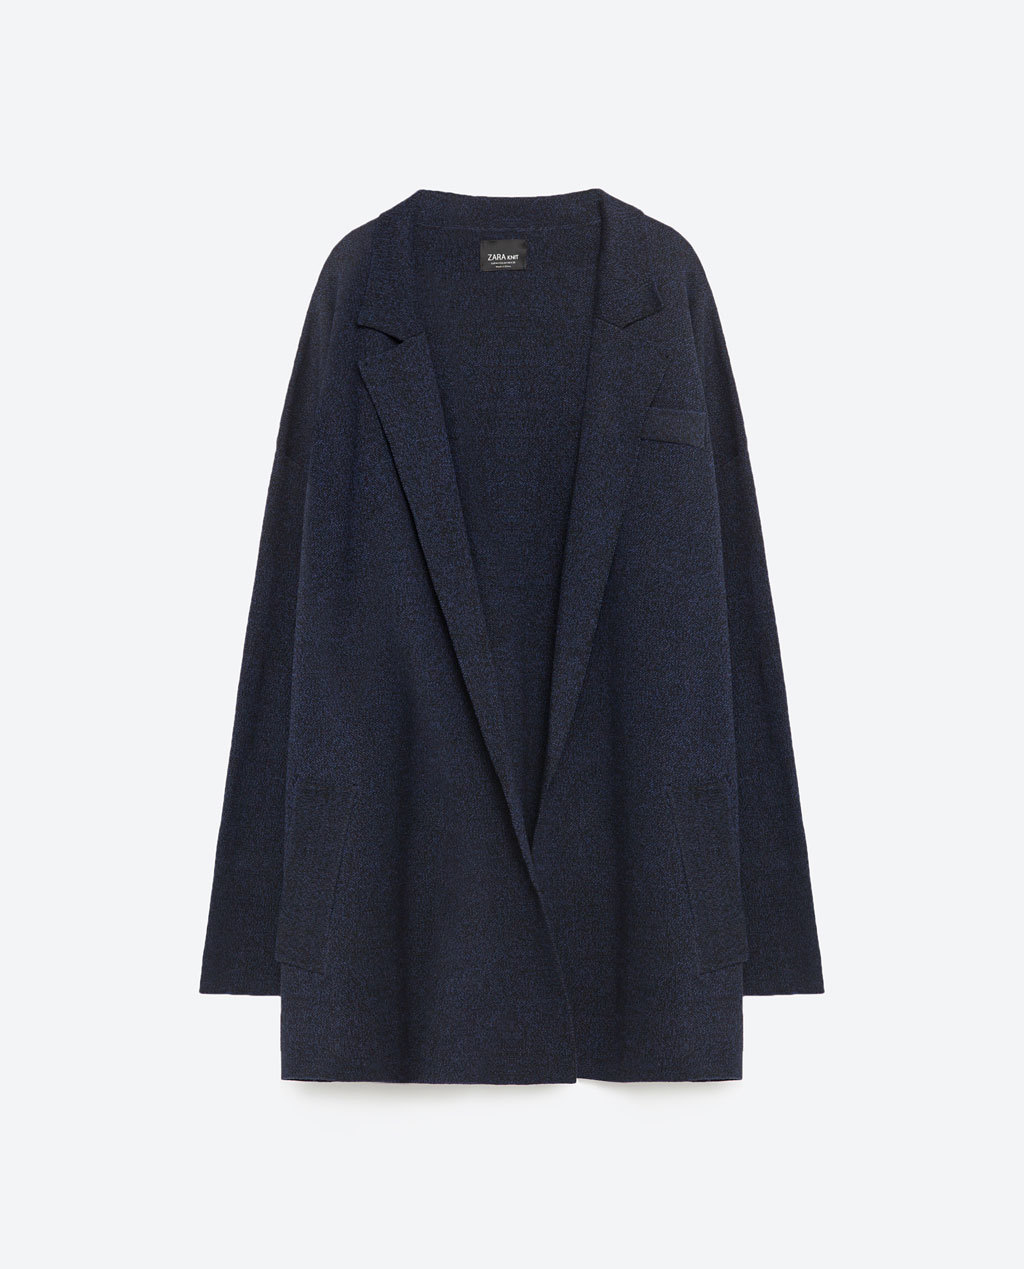 Oversized Cardigan - neckline: low v-neck; pattern: plain; length: below the bottom; style: open front; predominant colour: navy; occasions: casual; fibres: polyester/polyamide - mix; fit: loose; sleeve length: long sleeve; sleeve style: standard; texture group: knits/crochet; pattern type: fabric; season: s/s 2016; wardrobe: basic